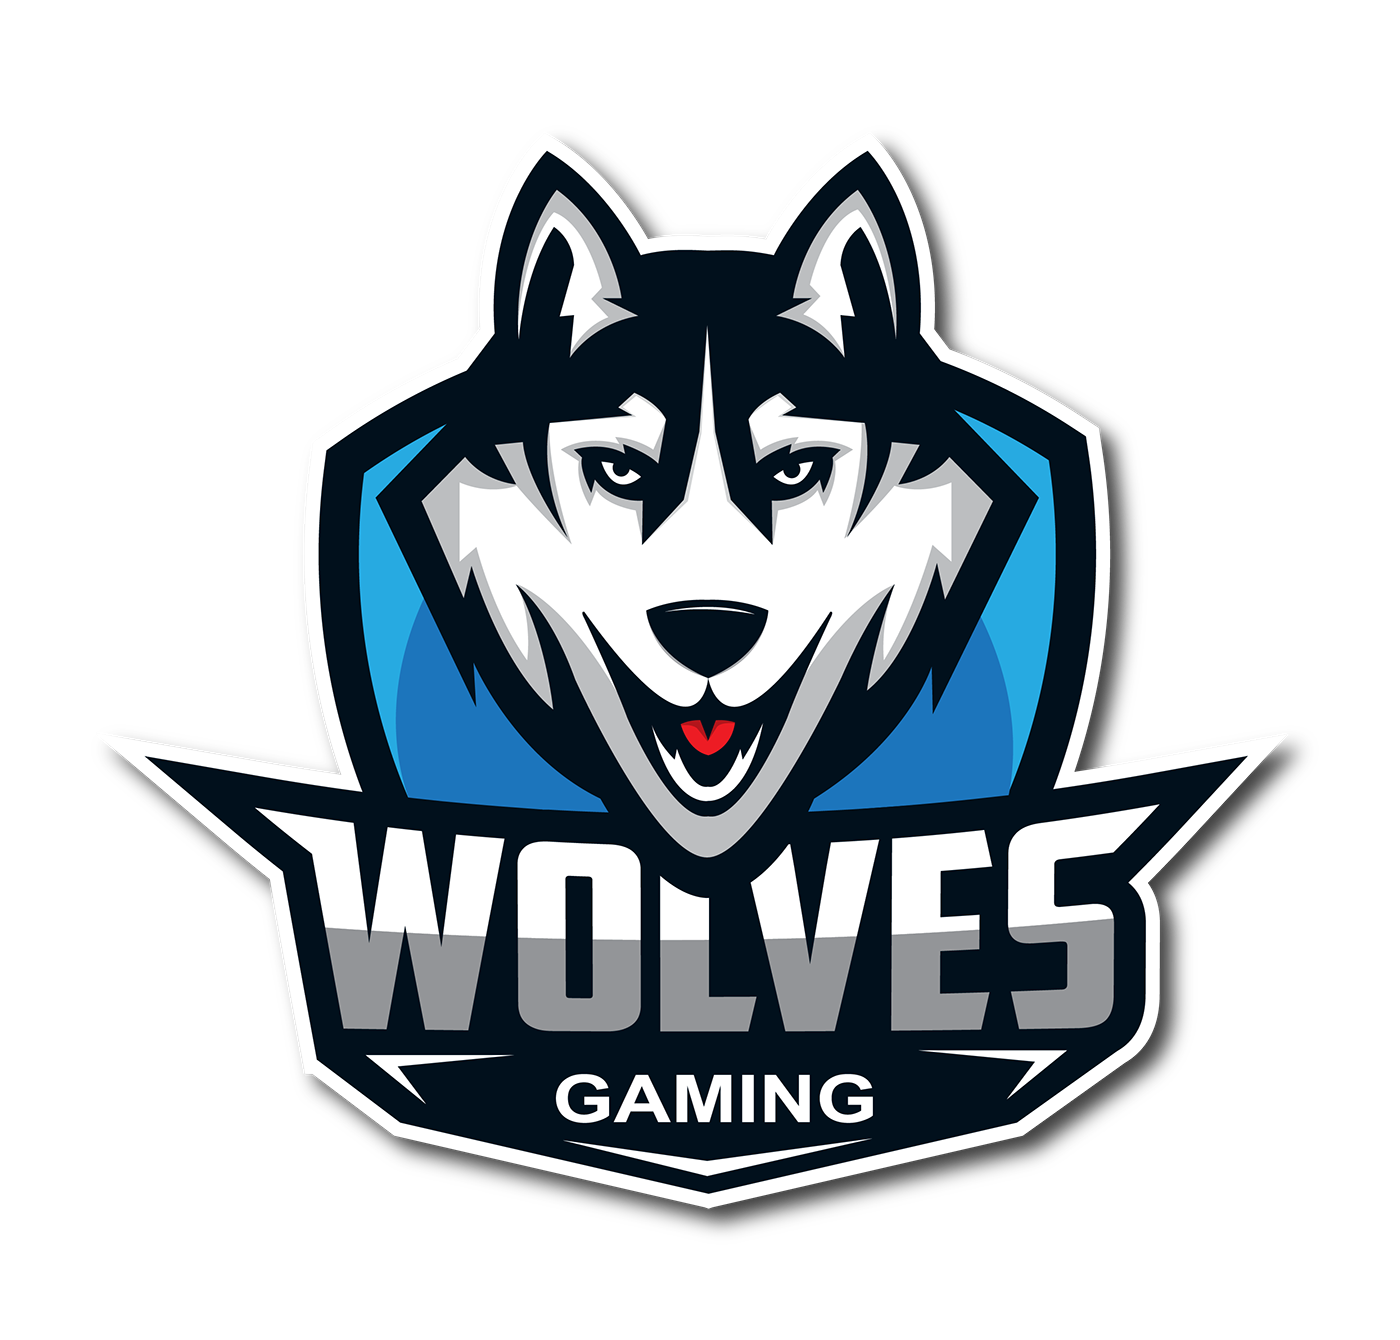 Gaming mascot logo png. Wolves on behance